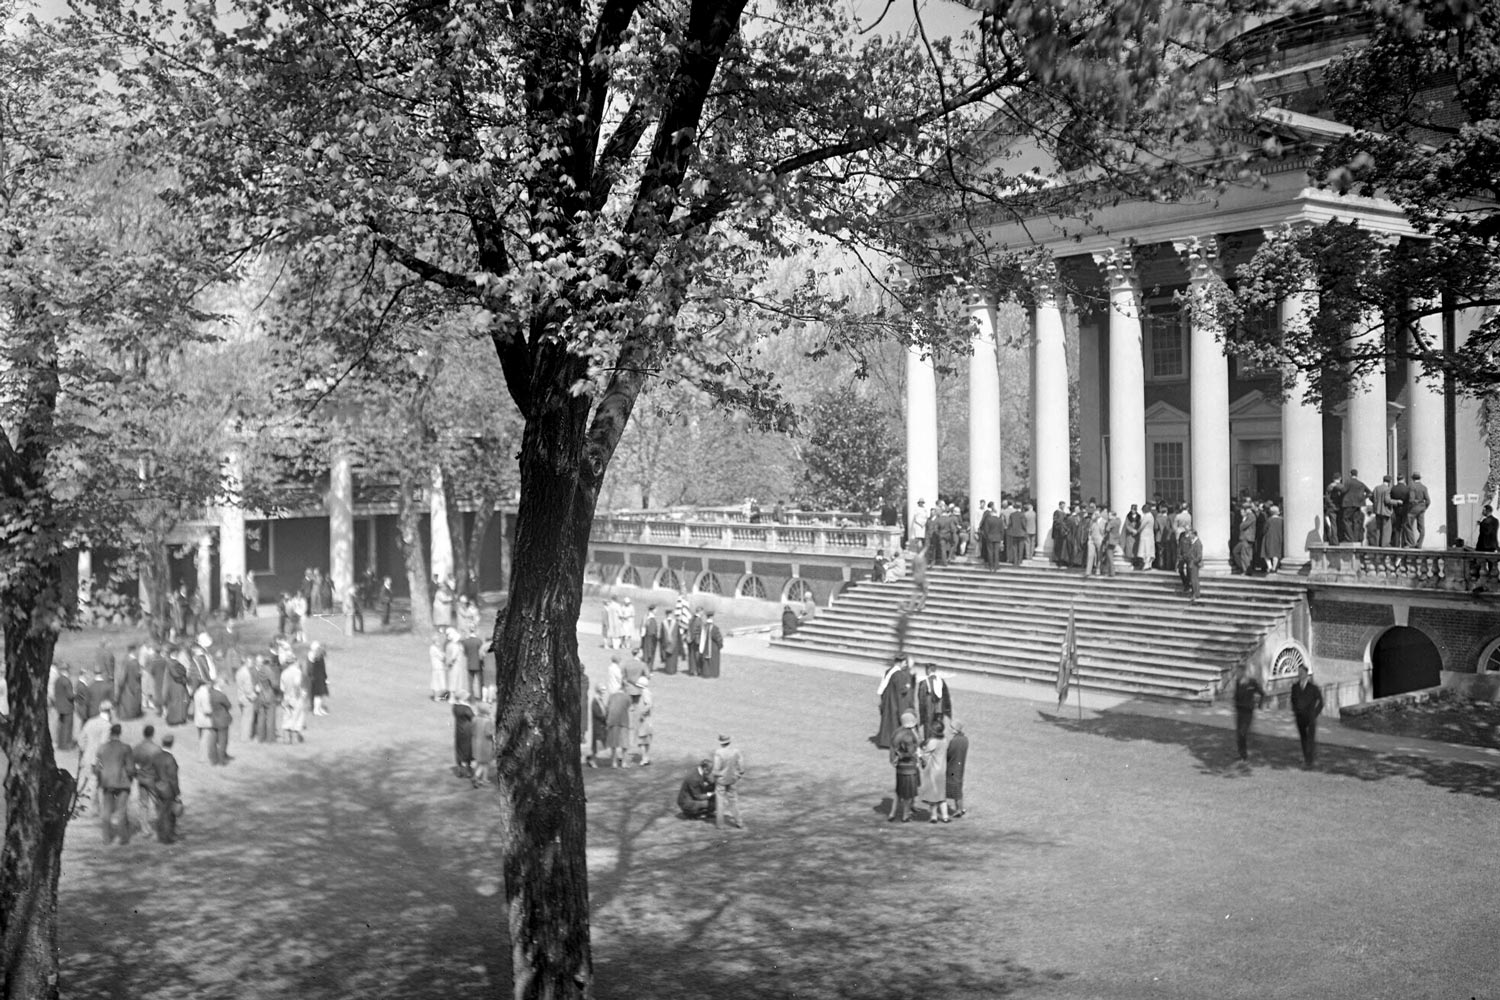 The Rotunda during Final Exercises. At the time, graduates processed from the Rotunda to the McIntire Amphitheatre, where the official ceremony was held until it moved to the South Lawn in 1953.